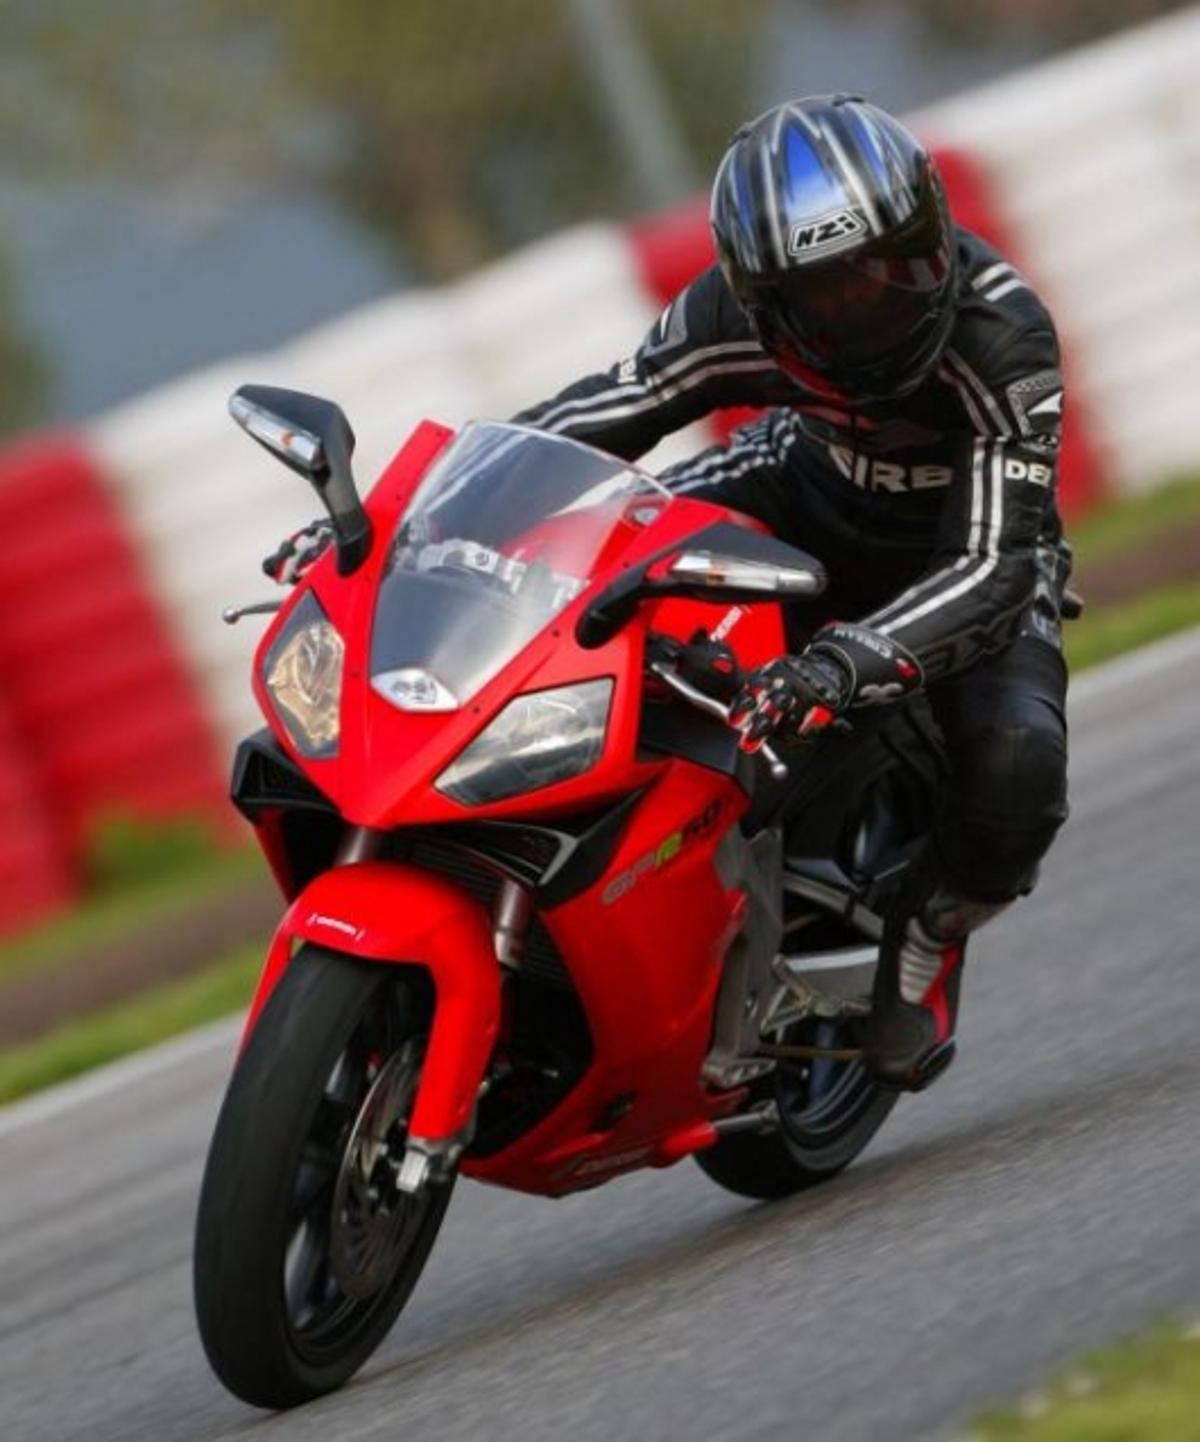 The petrol-engined Derbi on the racetrack